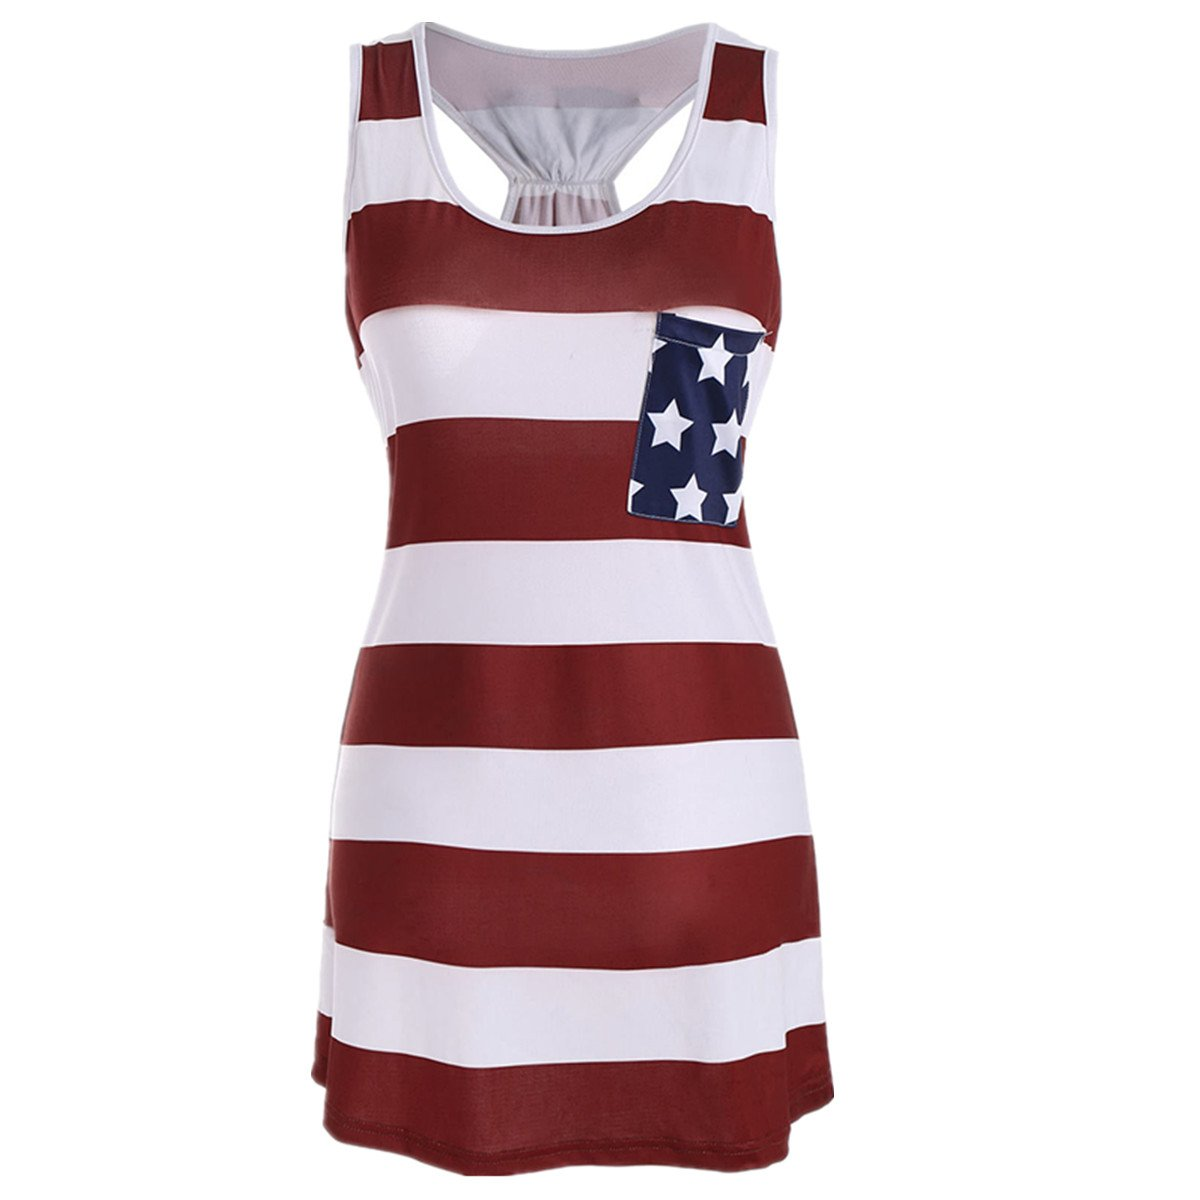 ee5a85159316 Womens PLUS SIZE American Flag Shirt Short Sleeve USA T-Shirts Tank Top  Blouses This Print American flag blouses tops can use for the celebrate 4th  of July.